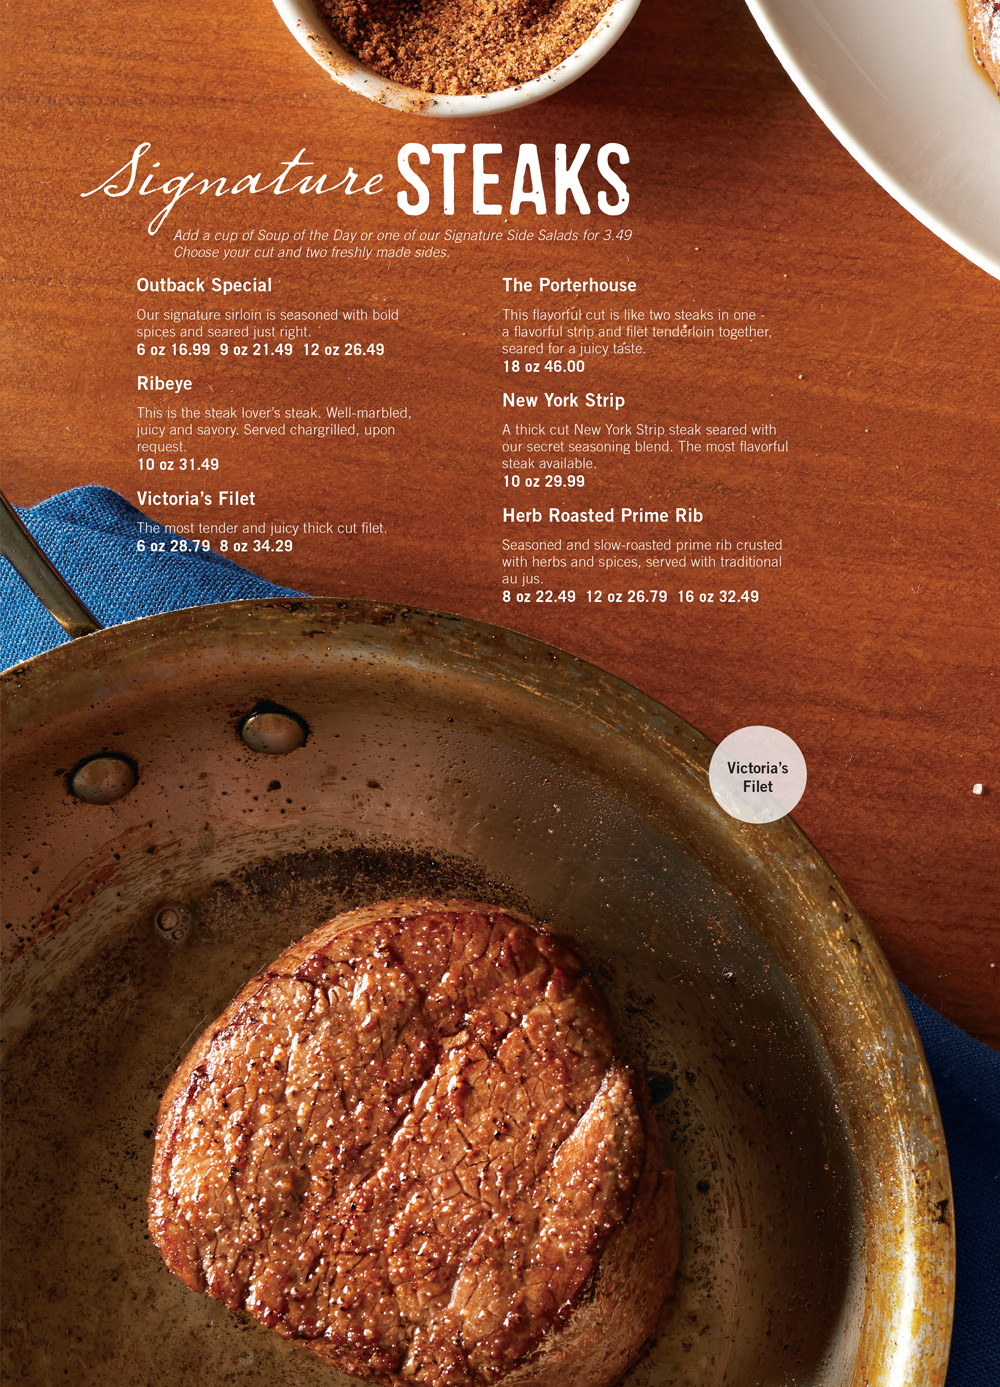 photograph about Outback Steakhouse Printable Menu known as Outback Steakhouse Bahamas - Nau - Nau / Paradise